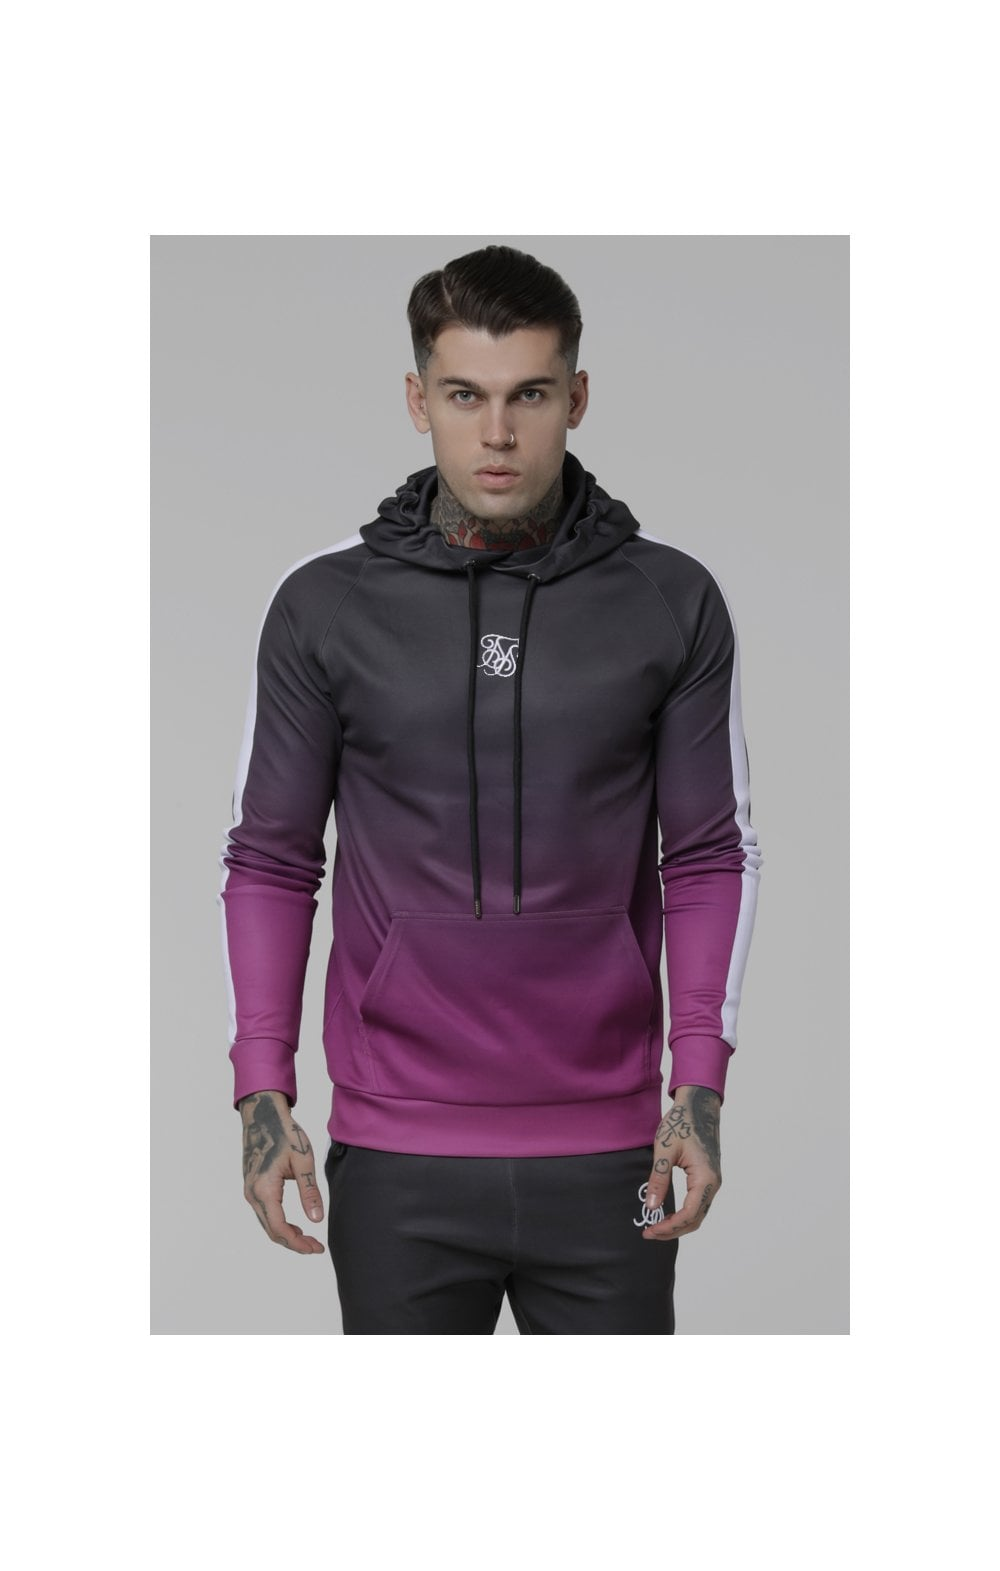 Load image into Gallery viewer, SikSilk Vapour Fade Overhead Hoodie - Grey & Pink (2)